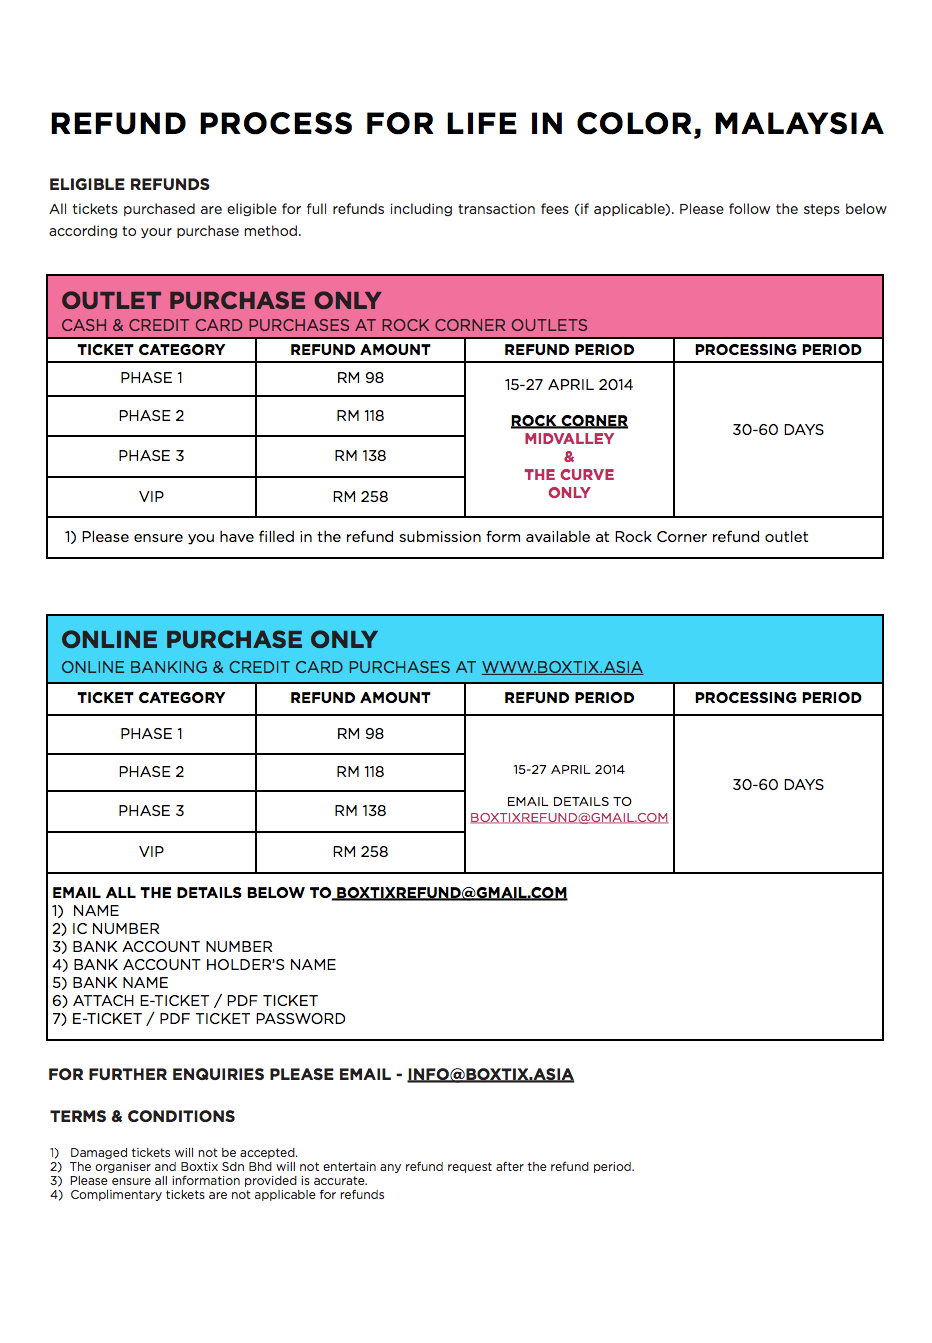 Life In Color refund details from Boxtix.asia.